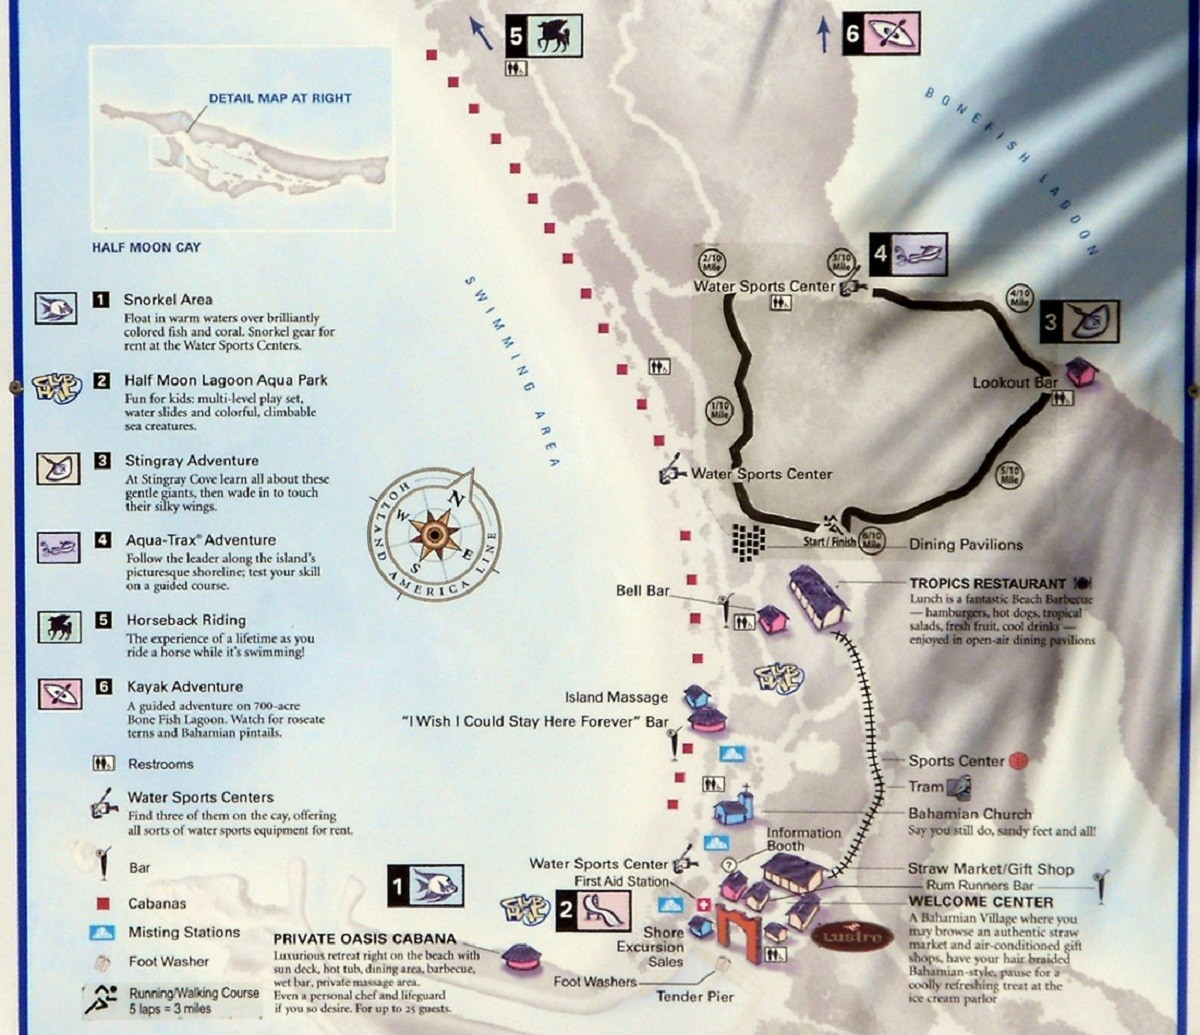 Detailed Half Moon Cay Map, which shows all of the things to do in Half Moon Bay.